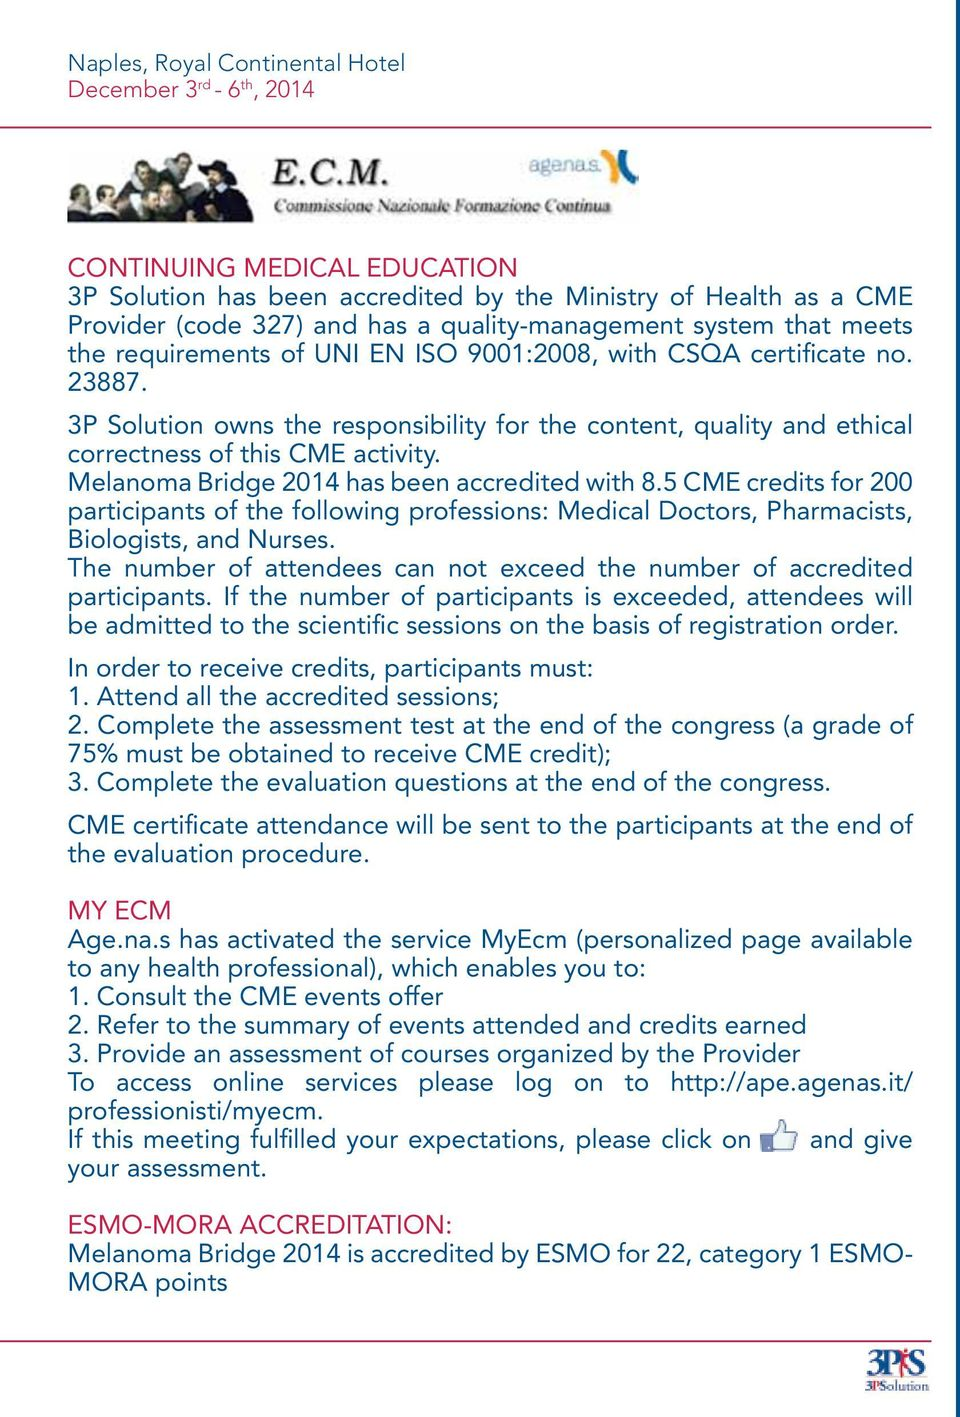 3P Solution owns the responsibility for the content, quality and ethical correctness of this CME activity. Melanoma Bridge 2014 has been accredited with 8.